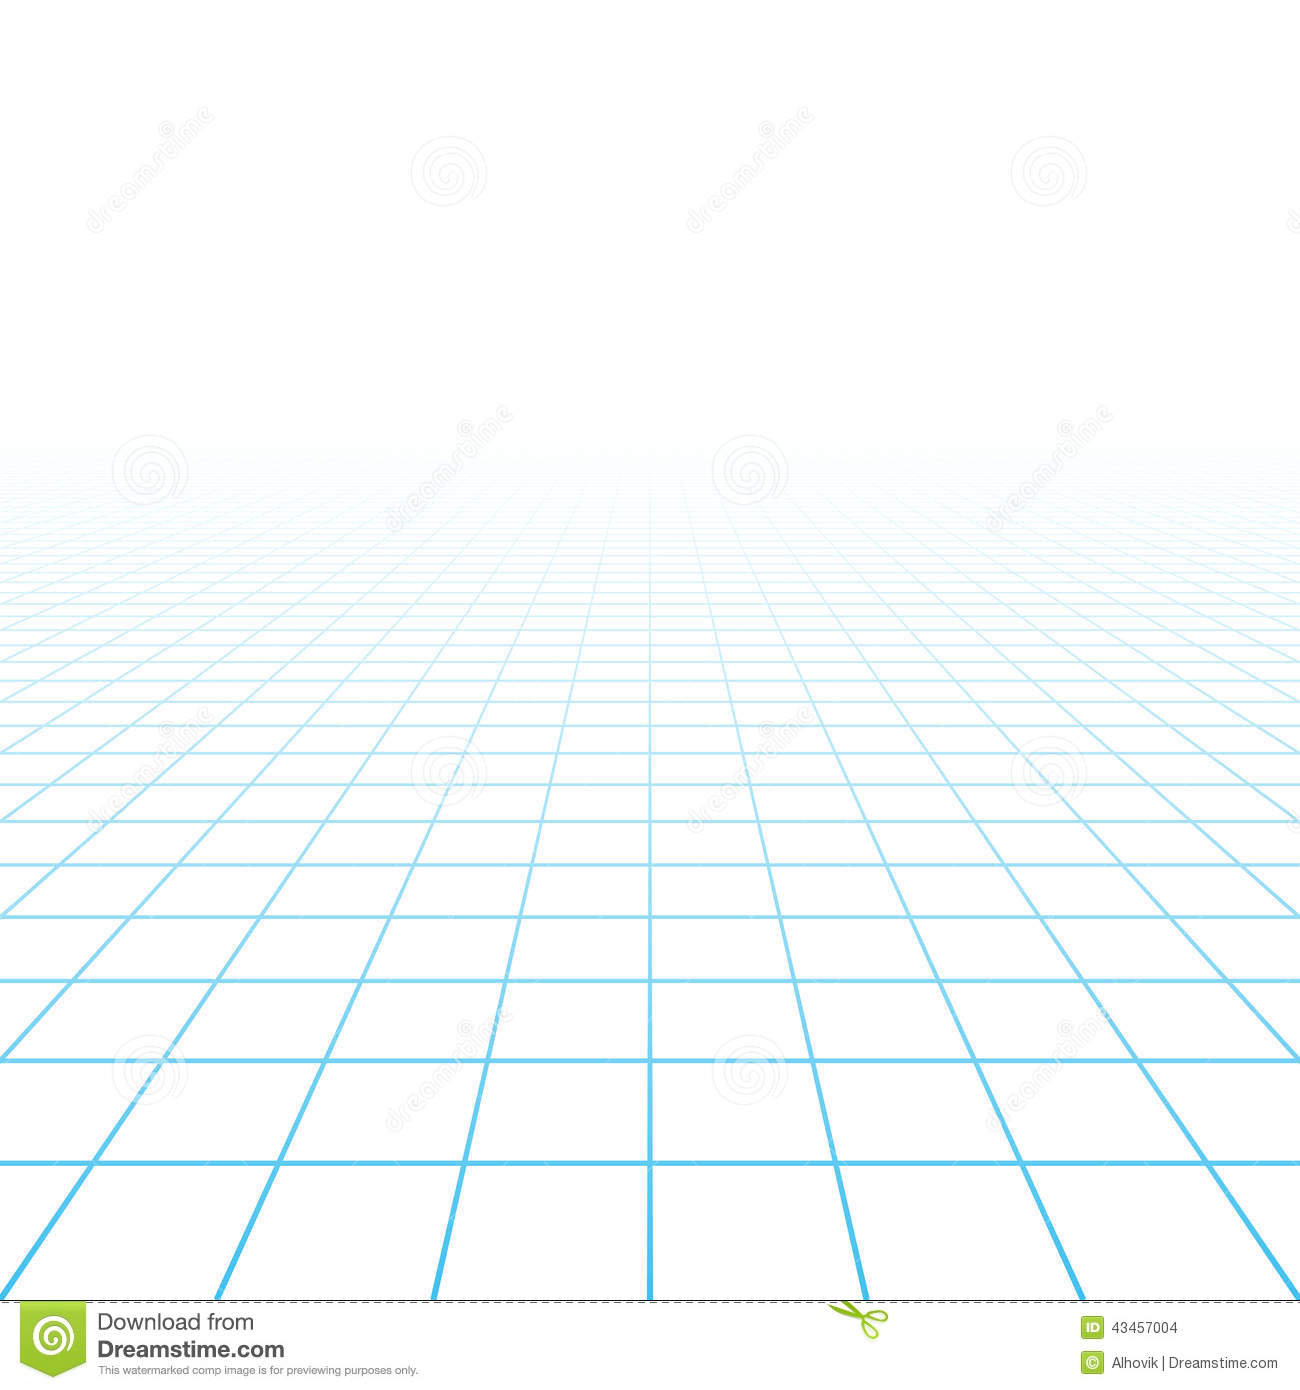 Perspective Grid Background Stock Vector - Image: 43457004